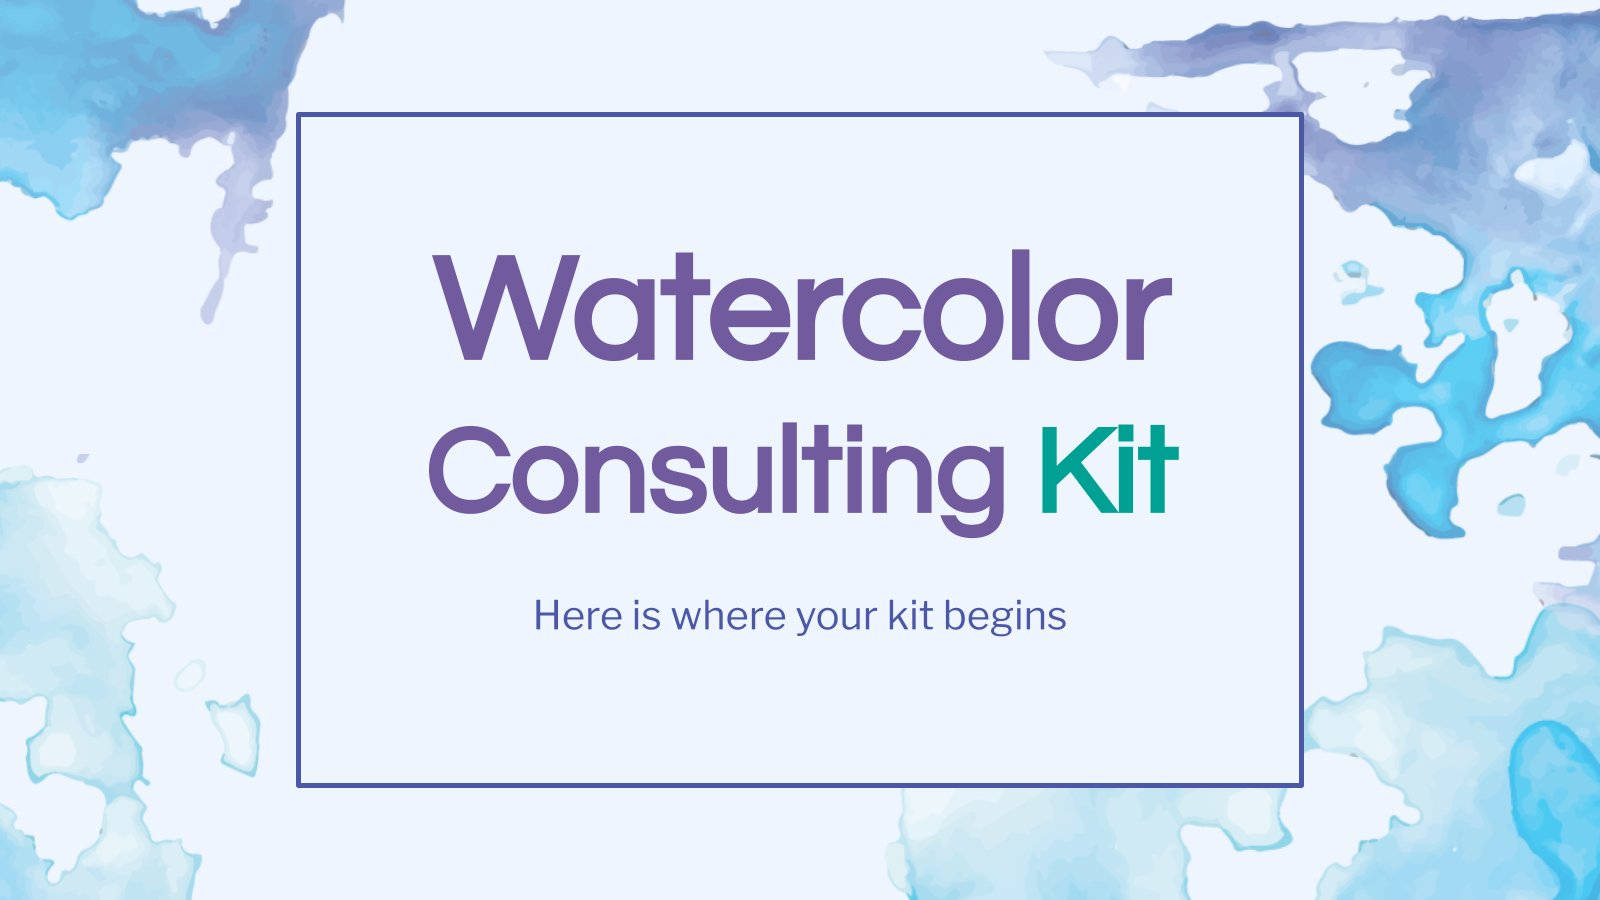 Watercolor Consulting Kit presentation template